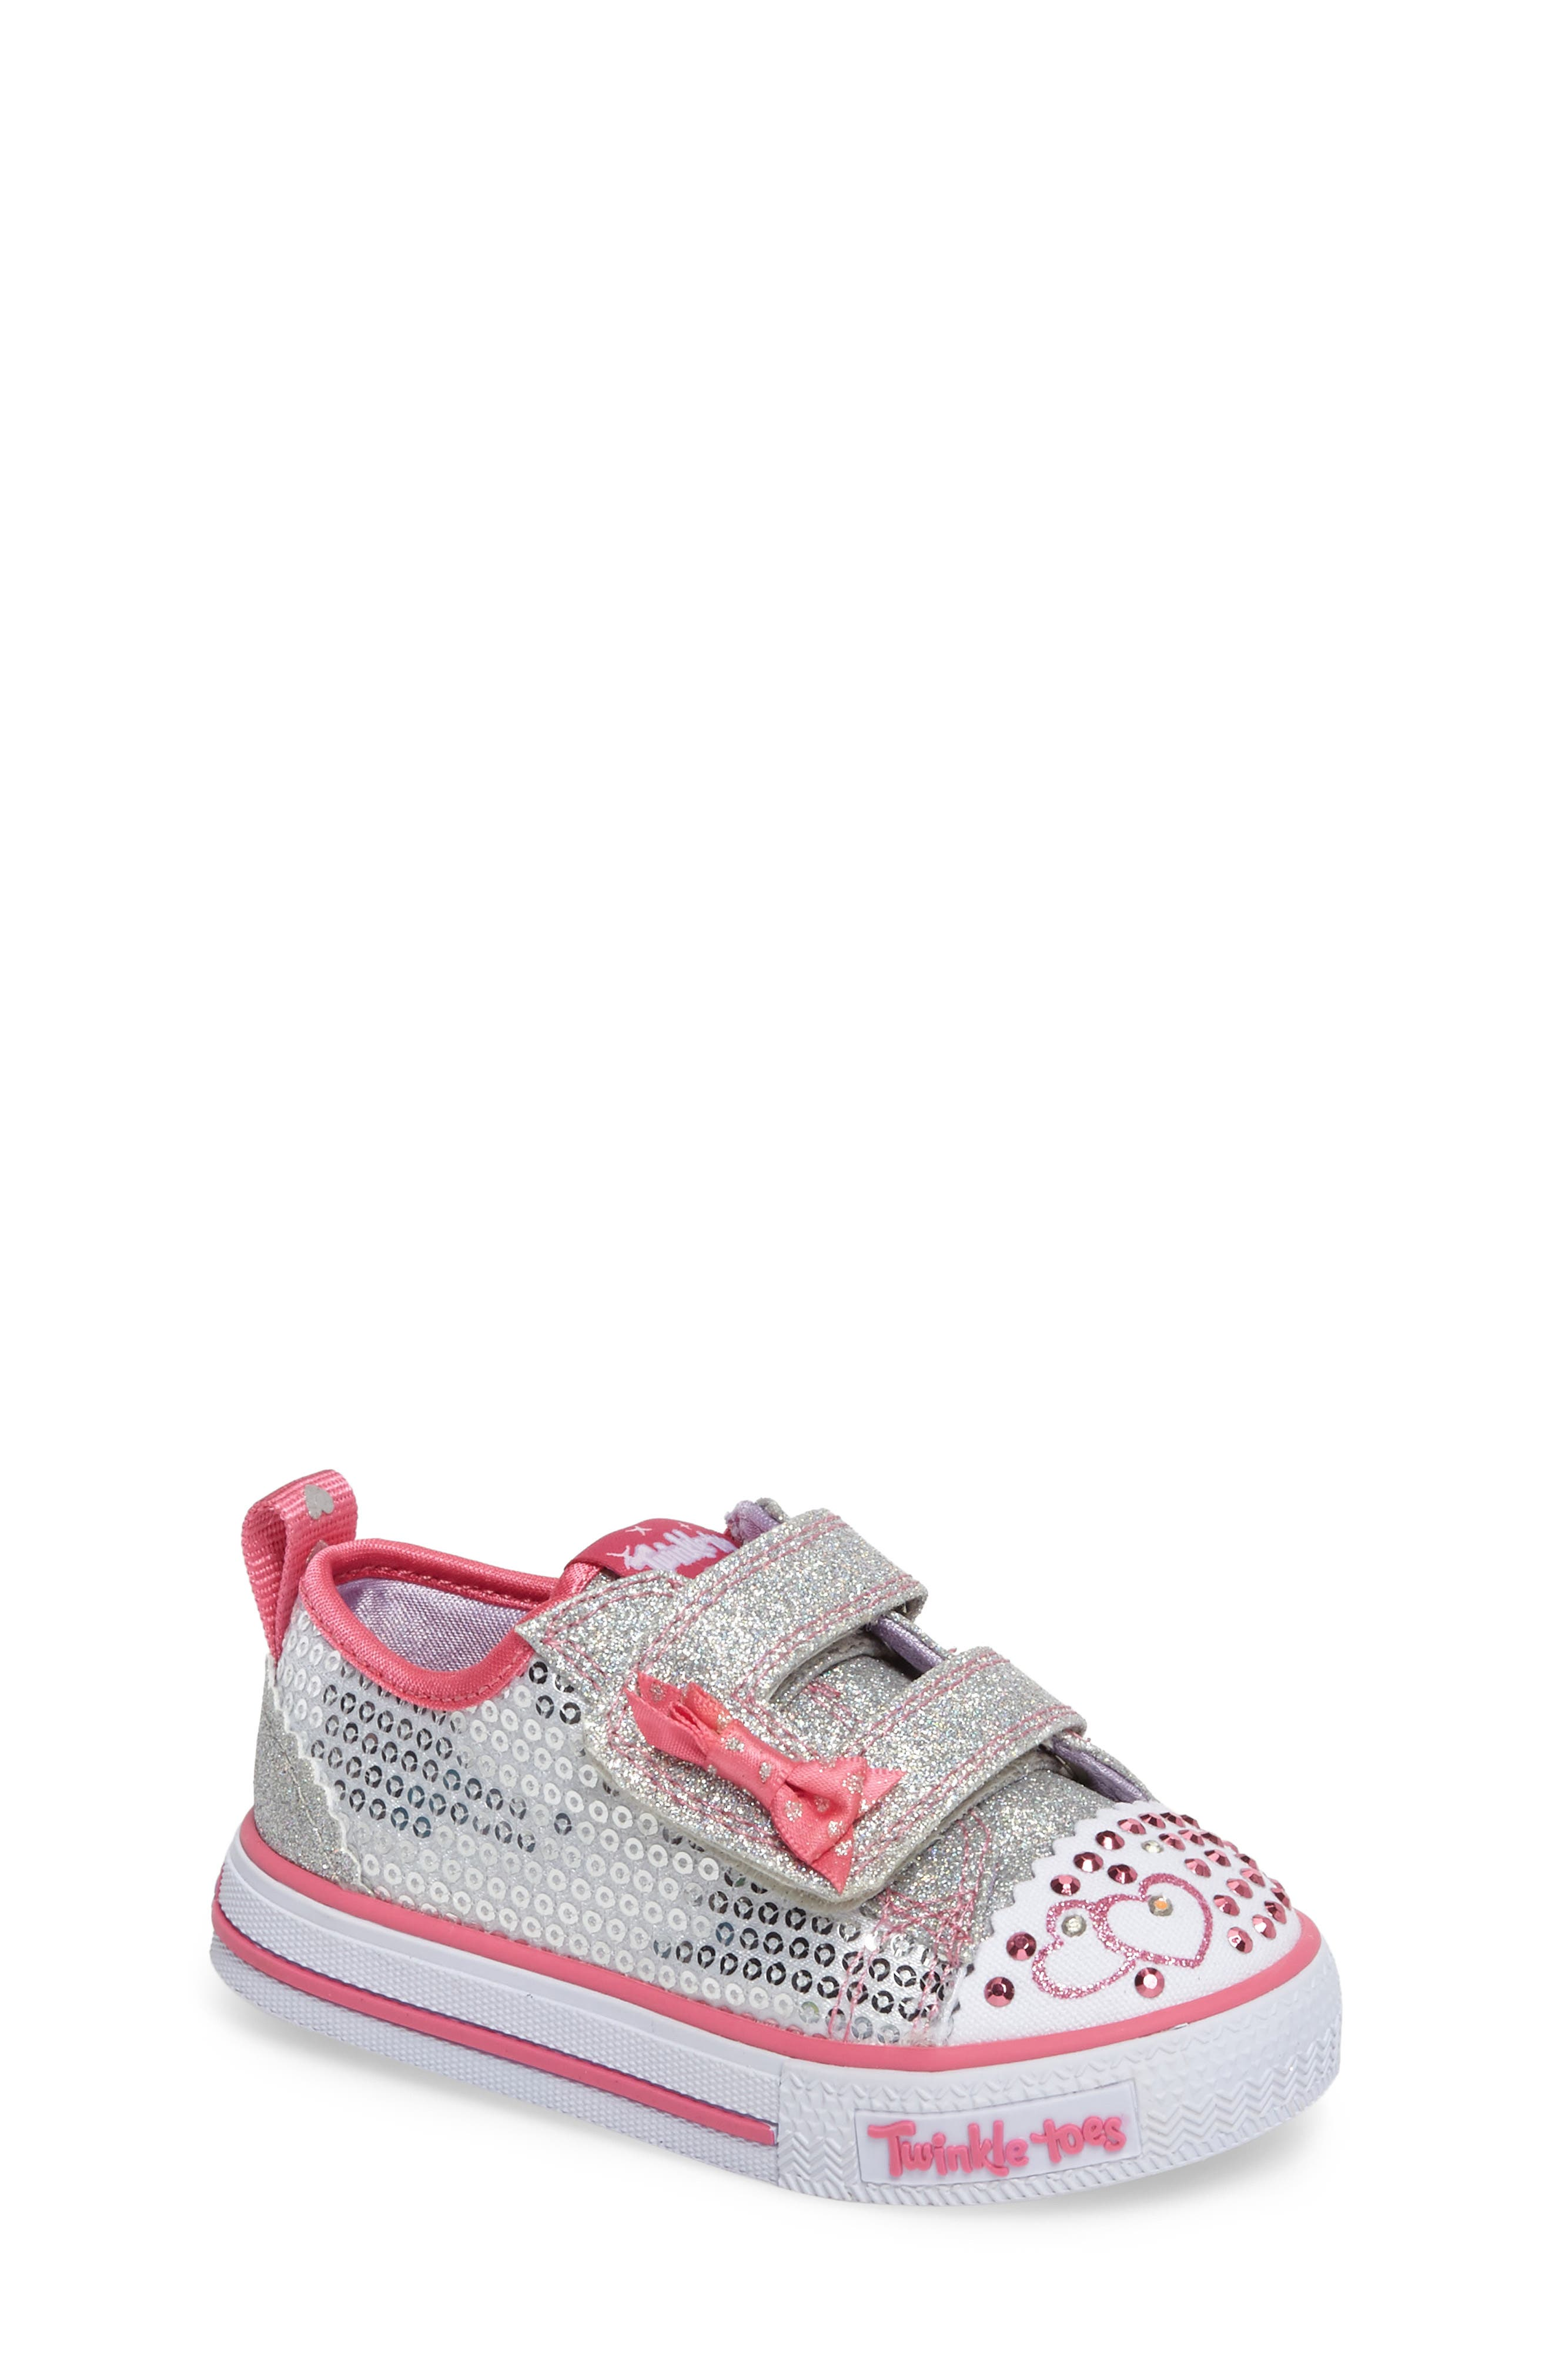 Shuffles - Itsy Bitsy Light-Up Sneaker,                         Main,                         color, 040